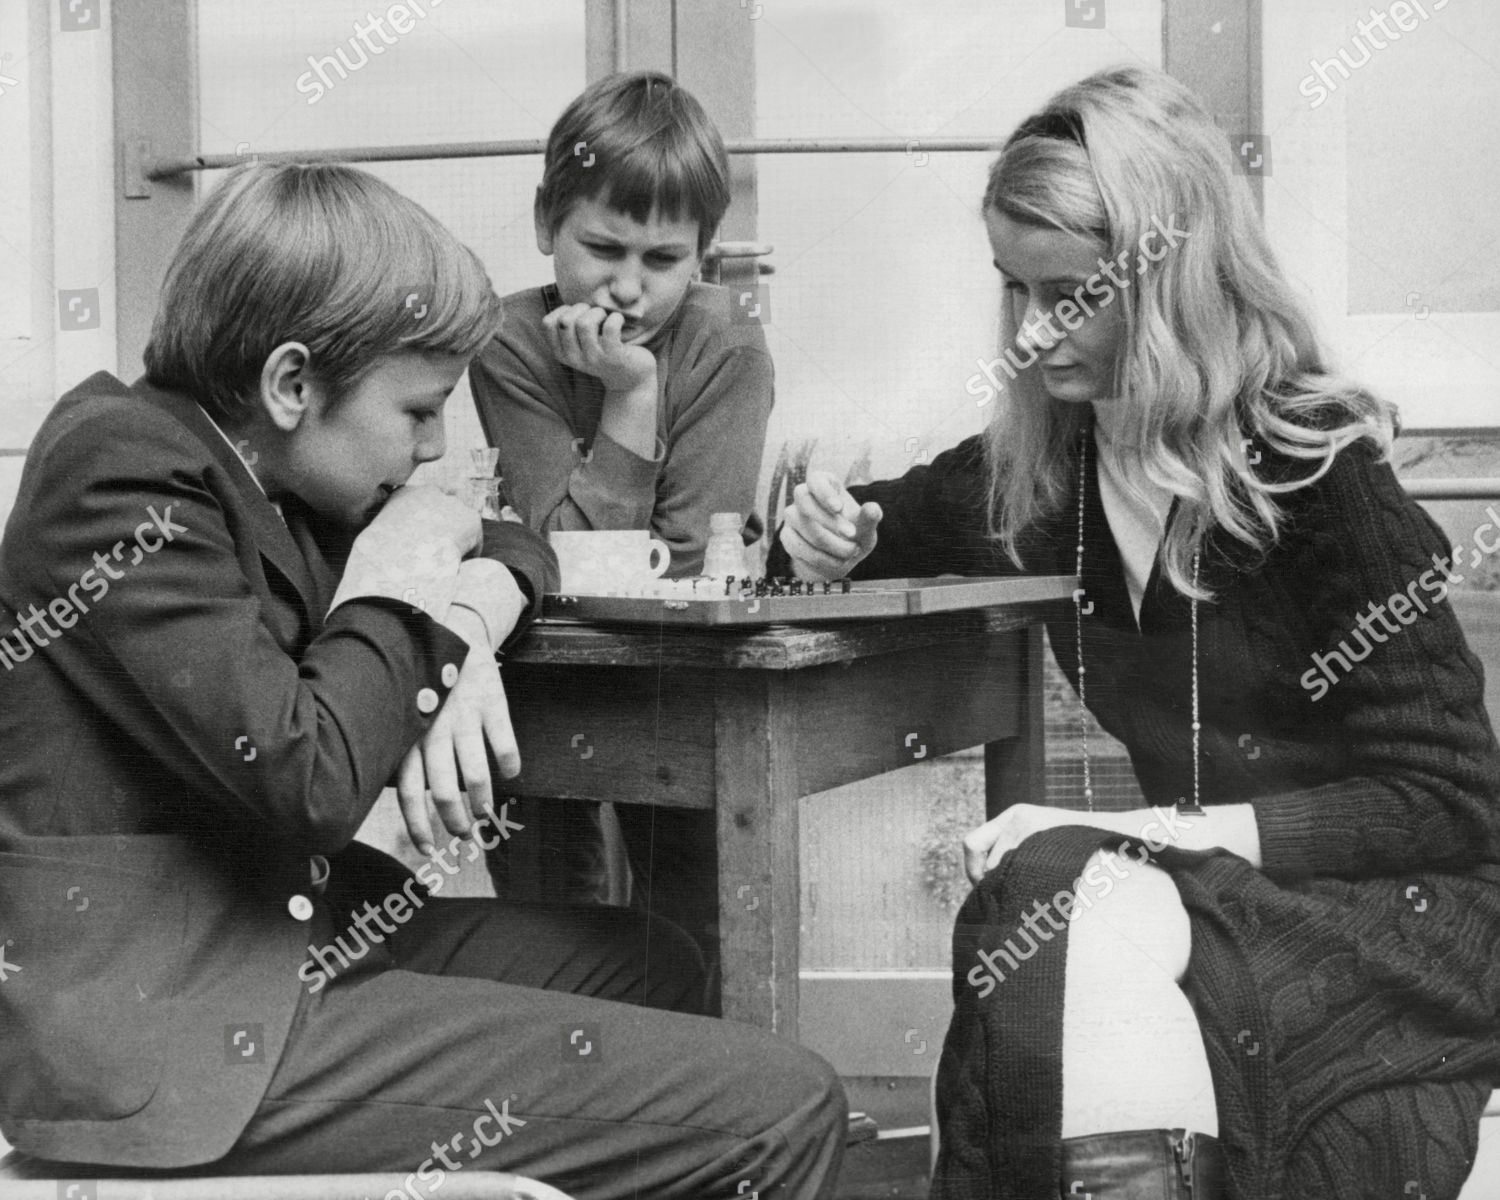 English Chess Champion Dinah Dobson Playing Against Two German Boys During Lunch-break At Chess Competition In Hastings. Box 658 221121512 A.jpg. English Chess Champion Dinah Dobson Playing Against Two German Boys During Lunch-break At Chess Competition In Hastings. Mandatory Credit: Photo by ANL/Shutterstock